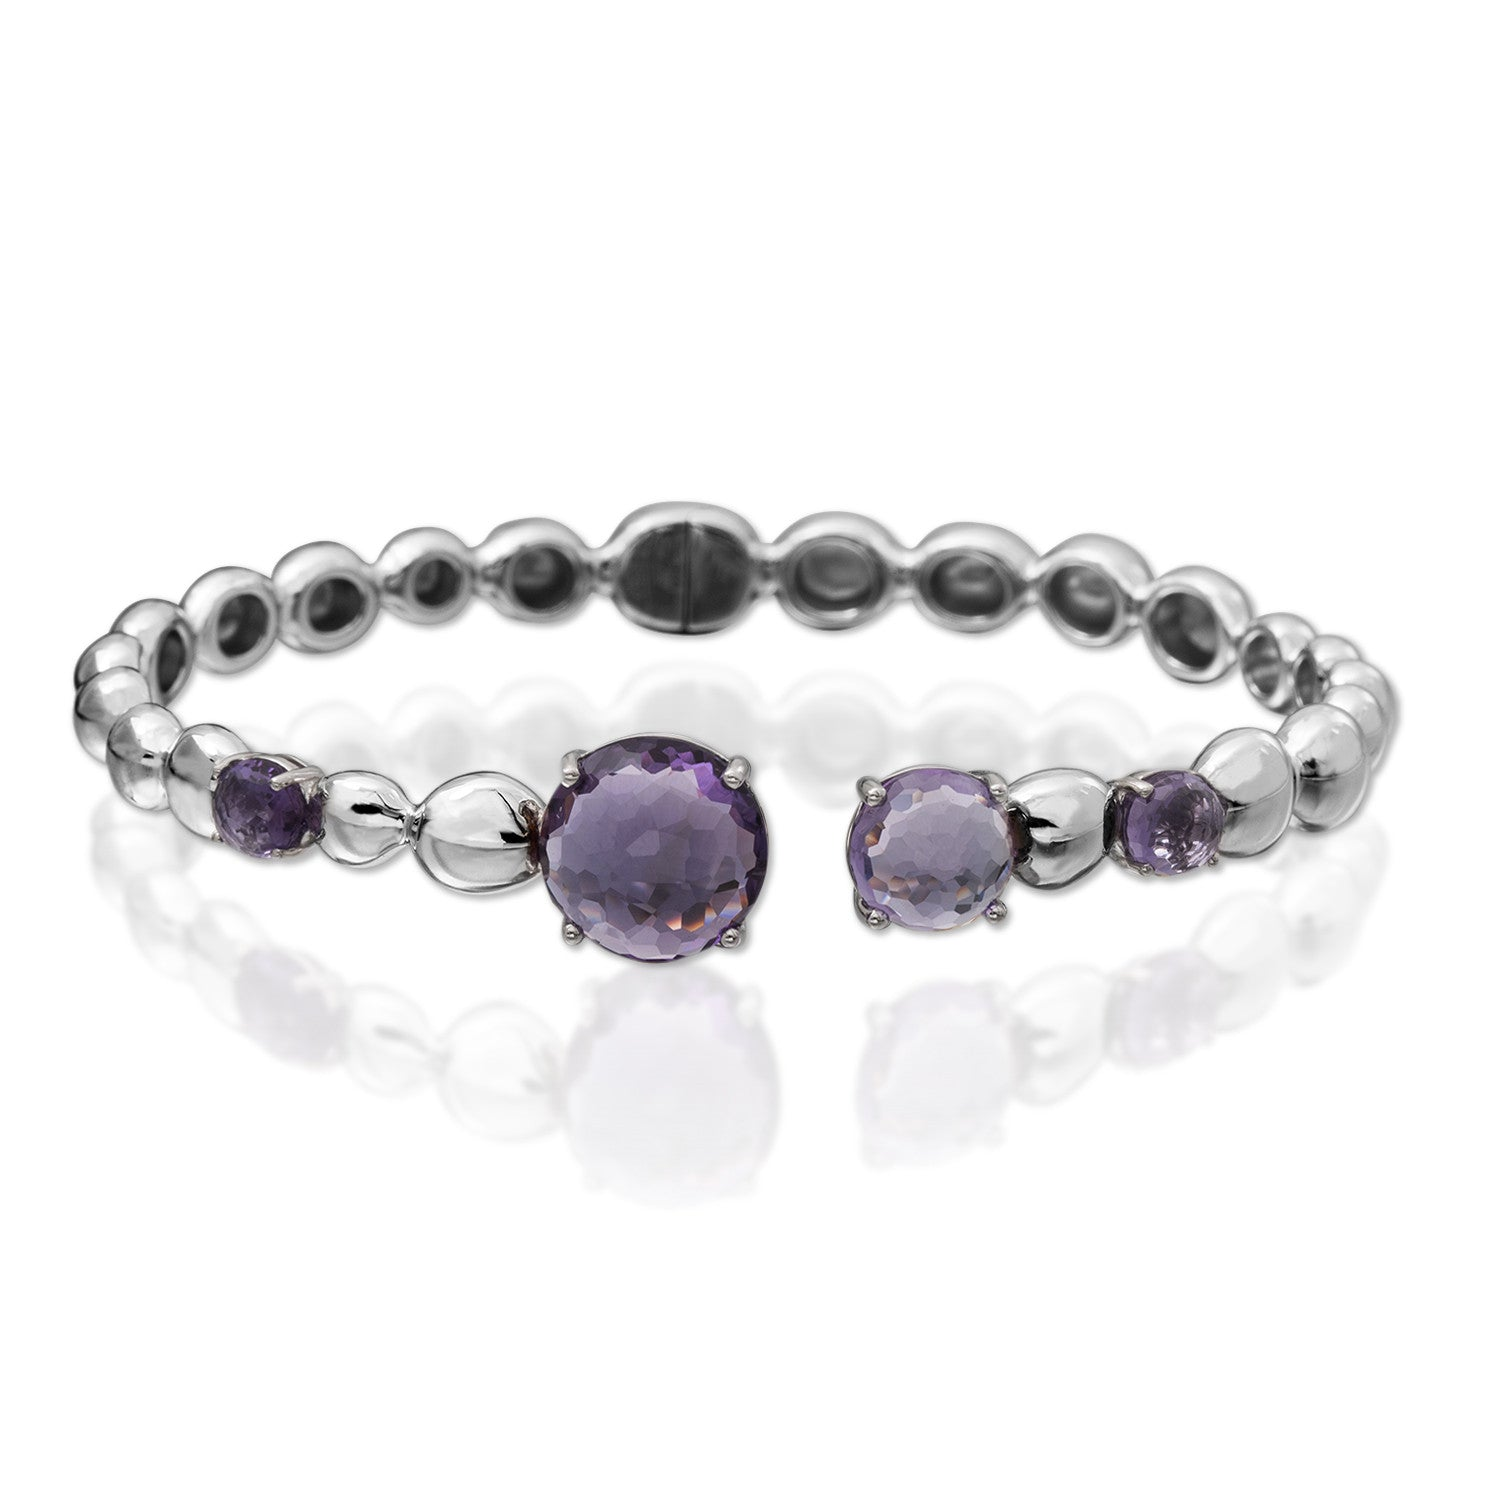 MOLTEN BANGLE WITH AMETHYST